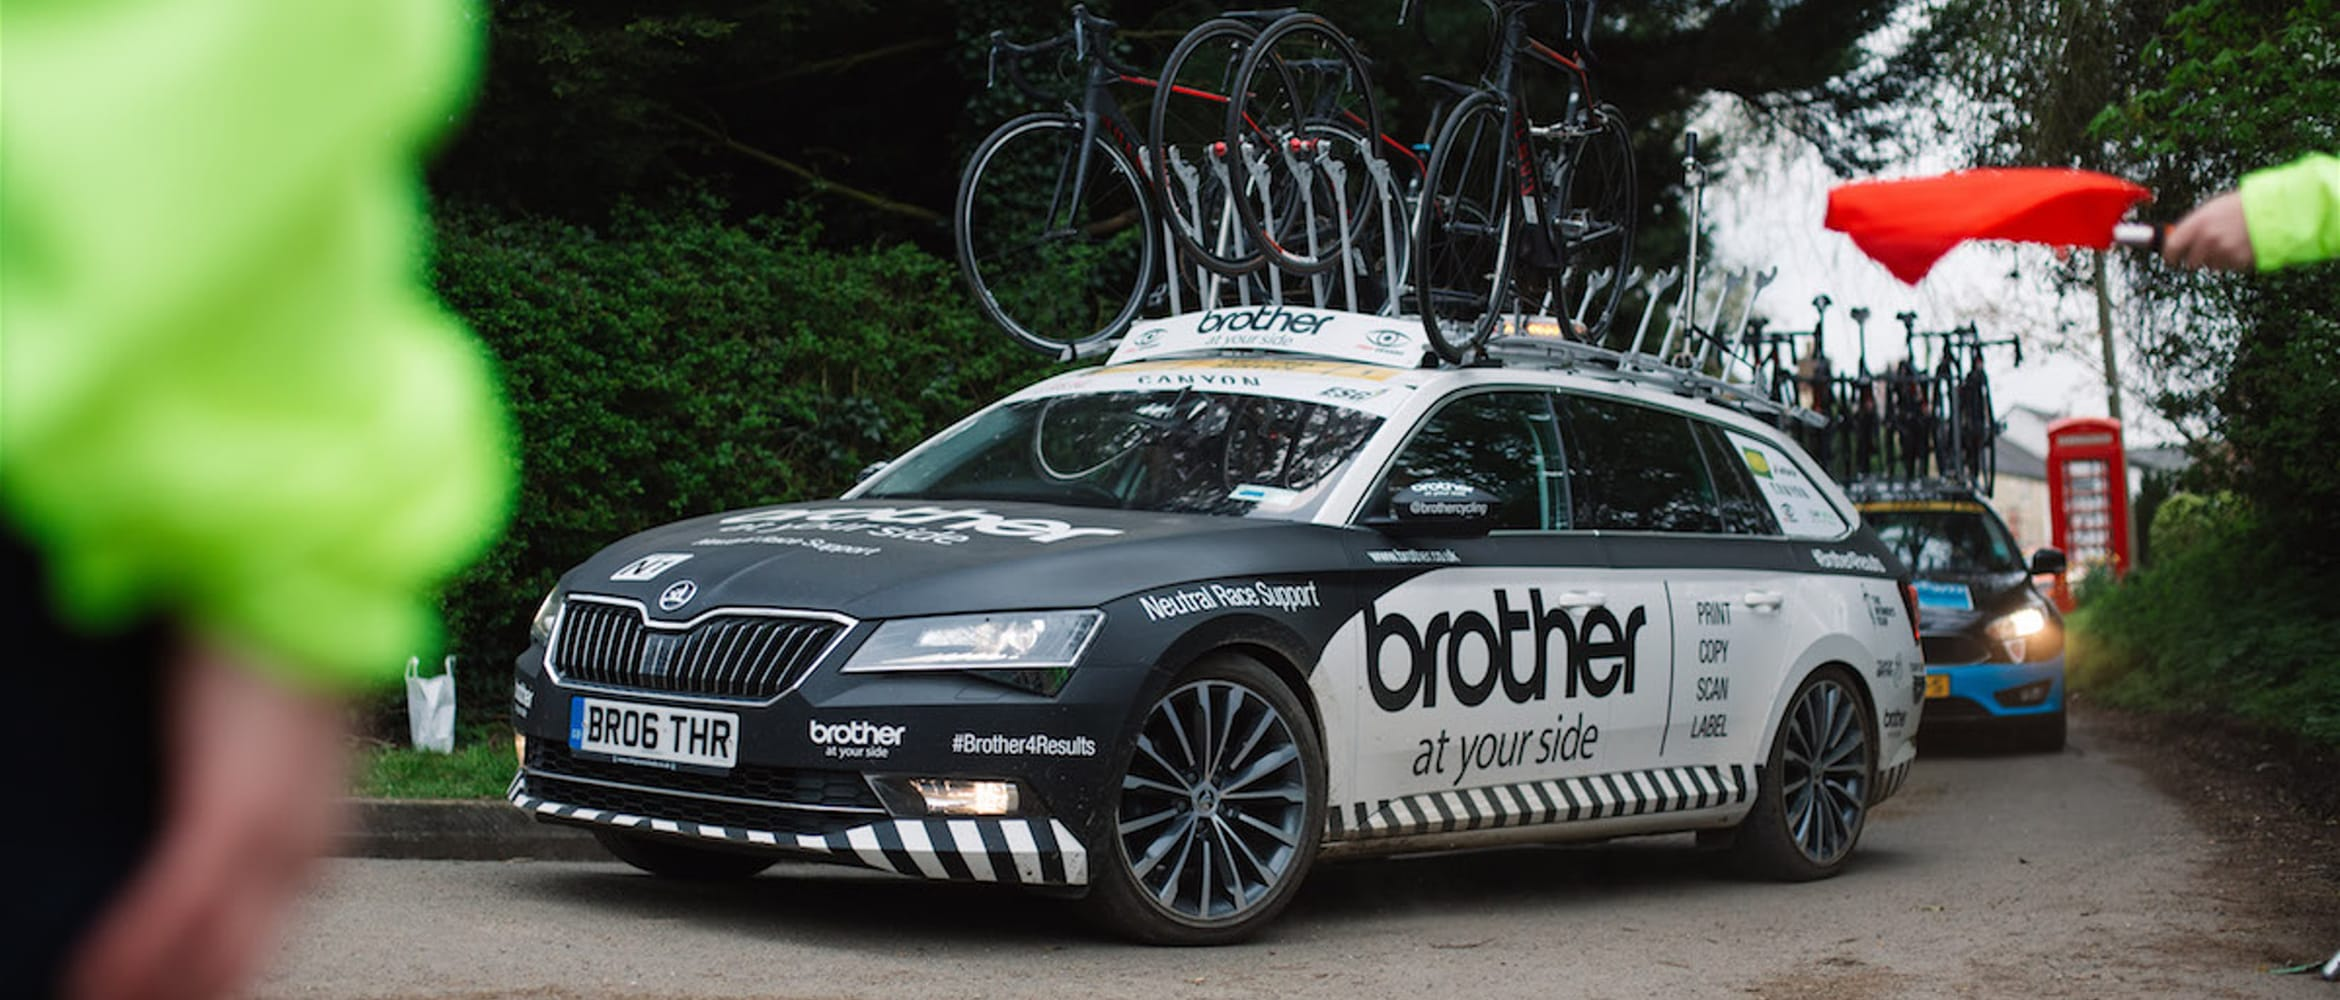 Brother cycling neutral support car